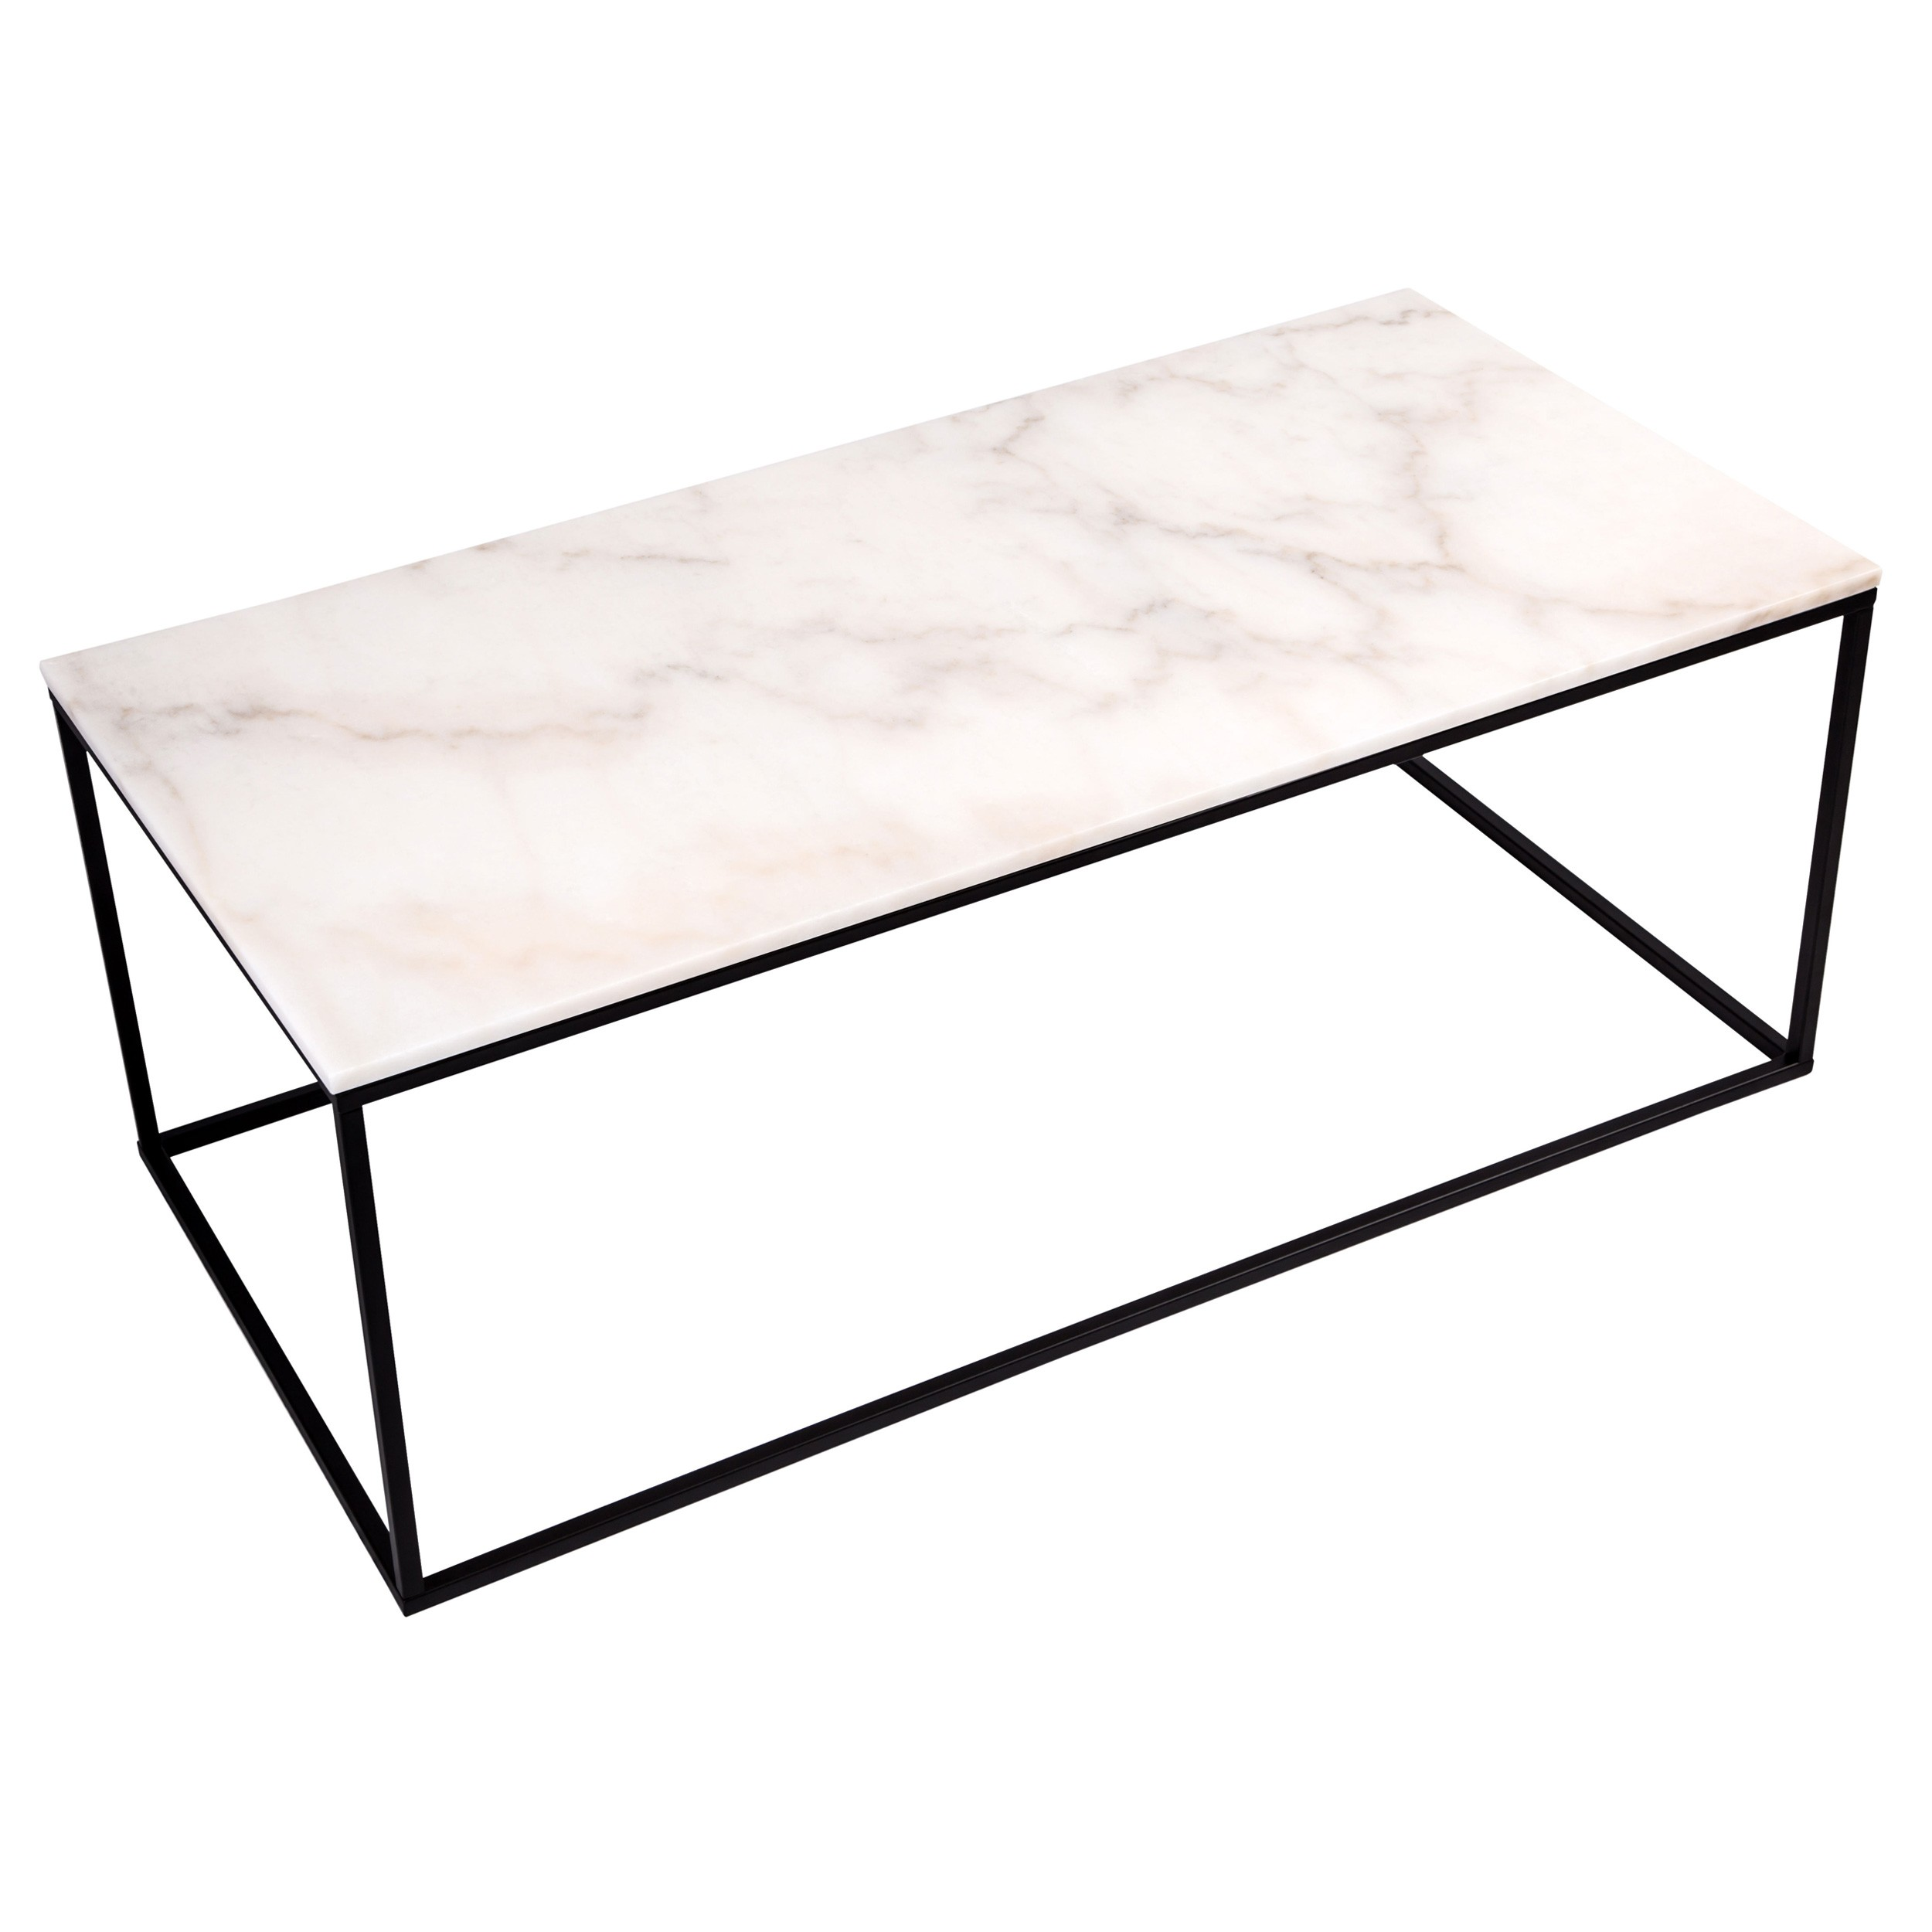 table basse rectangulaire dagmar marbre blanche commandez les tables basses rectangulaires. Black Bedroom Furniture Sets. Home Design Ideas